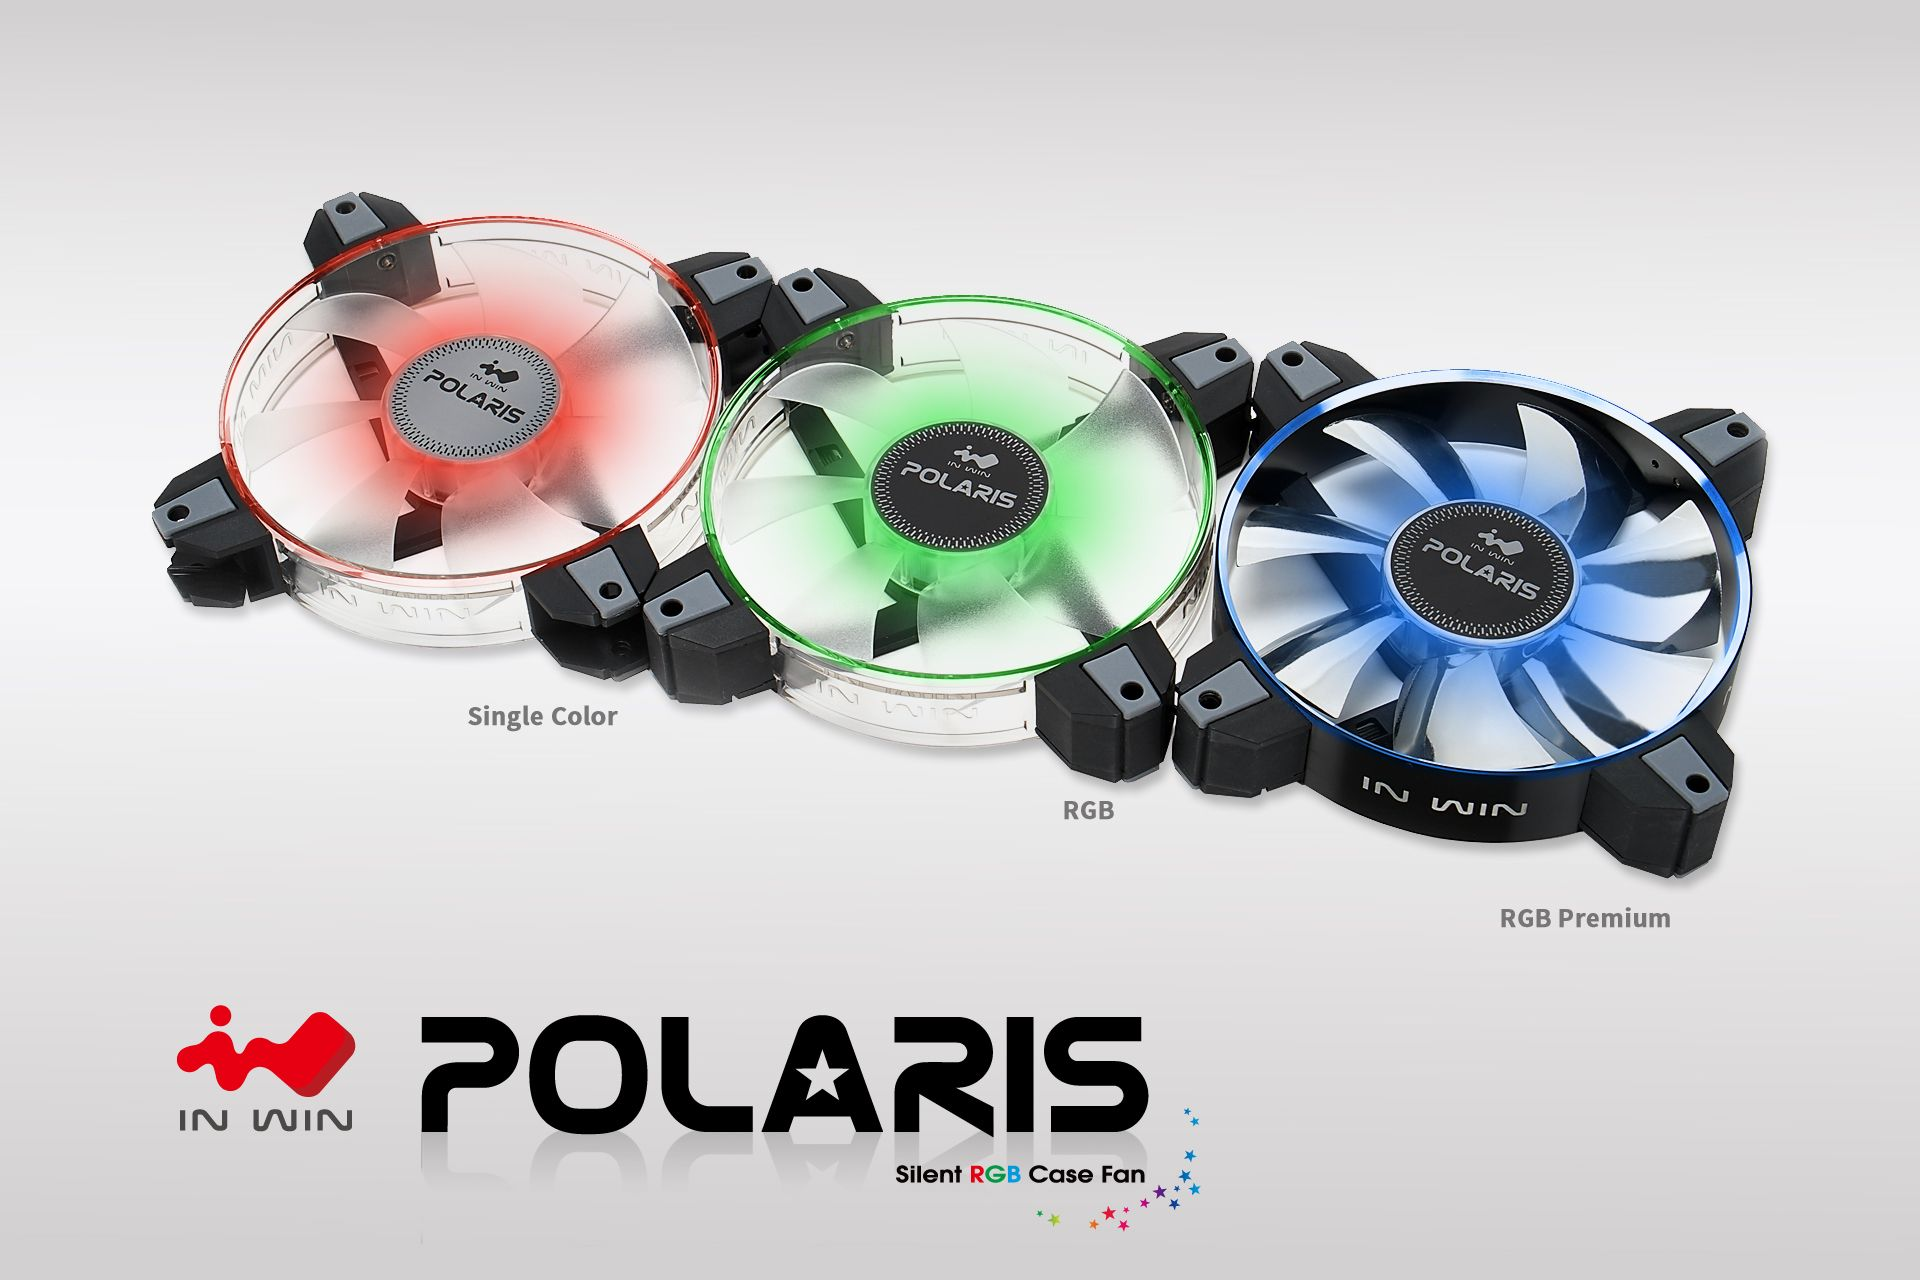 In Win Polaris photo